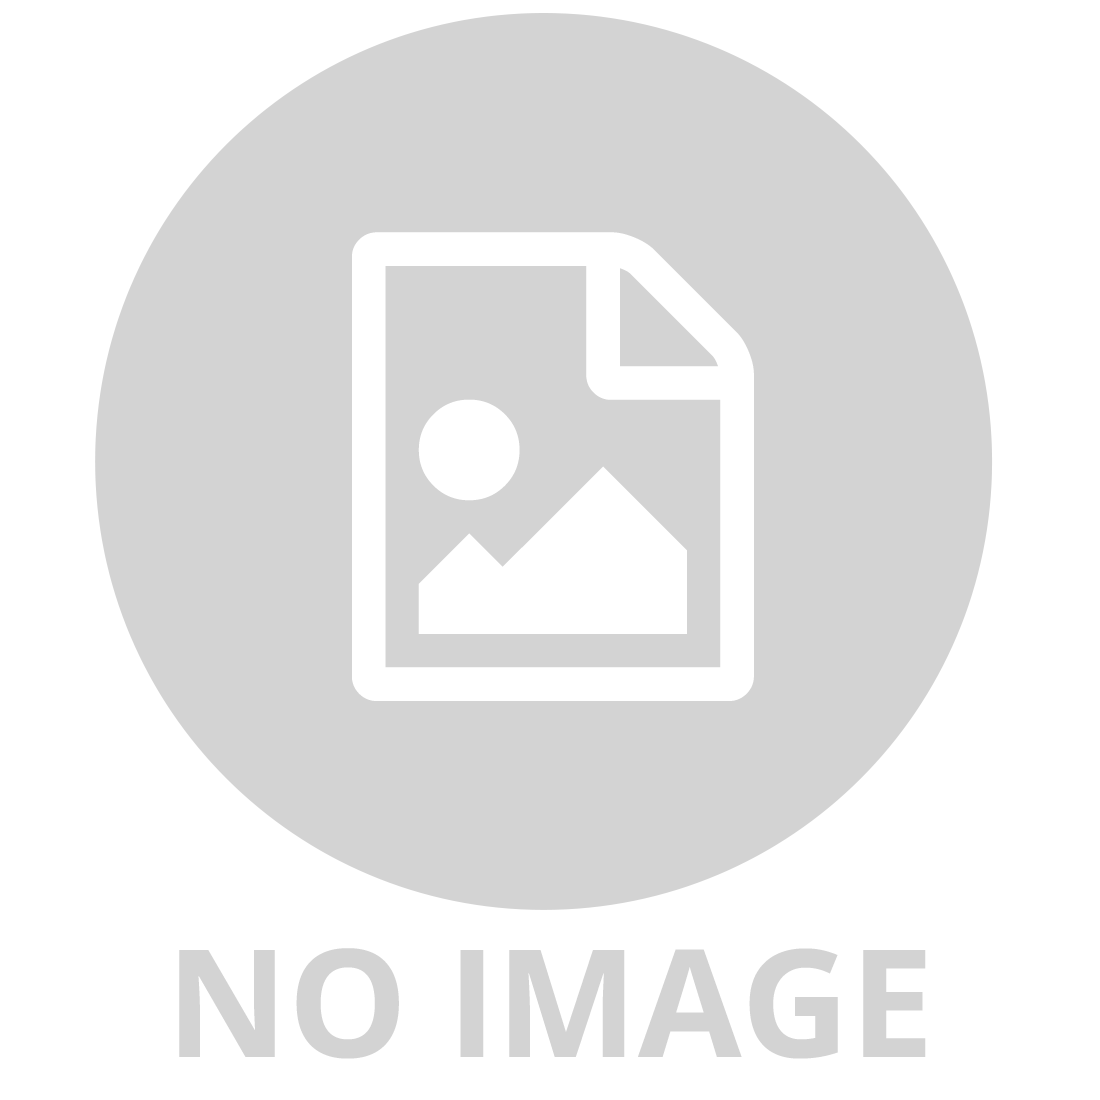 TWISTER SKYLIFT LI-PO 11.1V 800MAH BATTERY